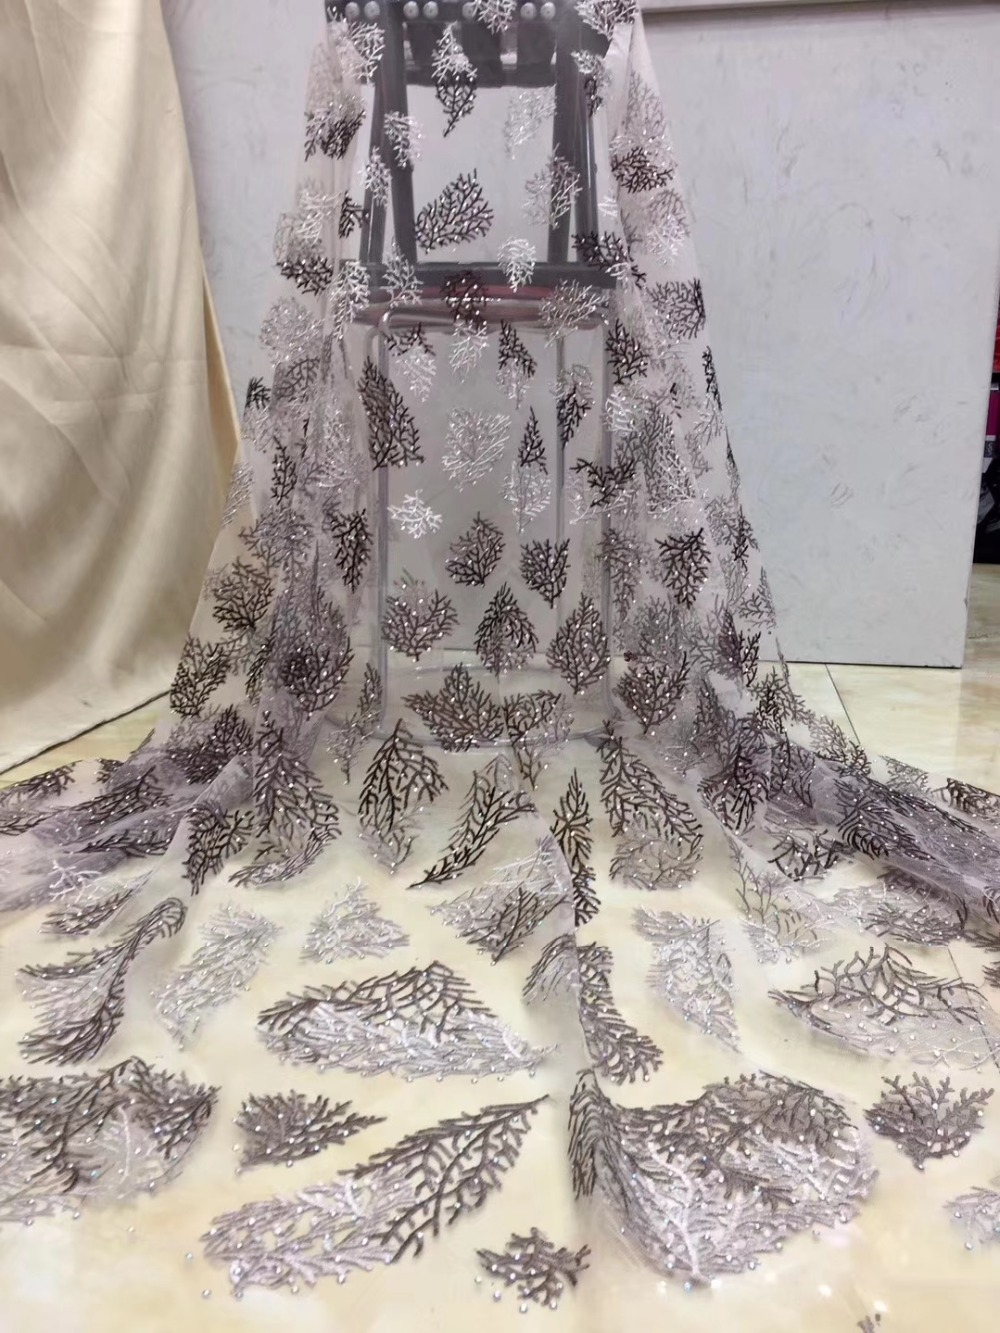 African Lace 2019 French Nigerian Lace Fabric Bridal High Quality Stones  Net Tulle Lace Fabric For Wedding Party    DPMA232African Lace 2019 French Nigerian Lace Fabric Bridal High Quality Stones  Net Tulle Lace Fabric For Wedding Party    DPMA232